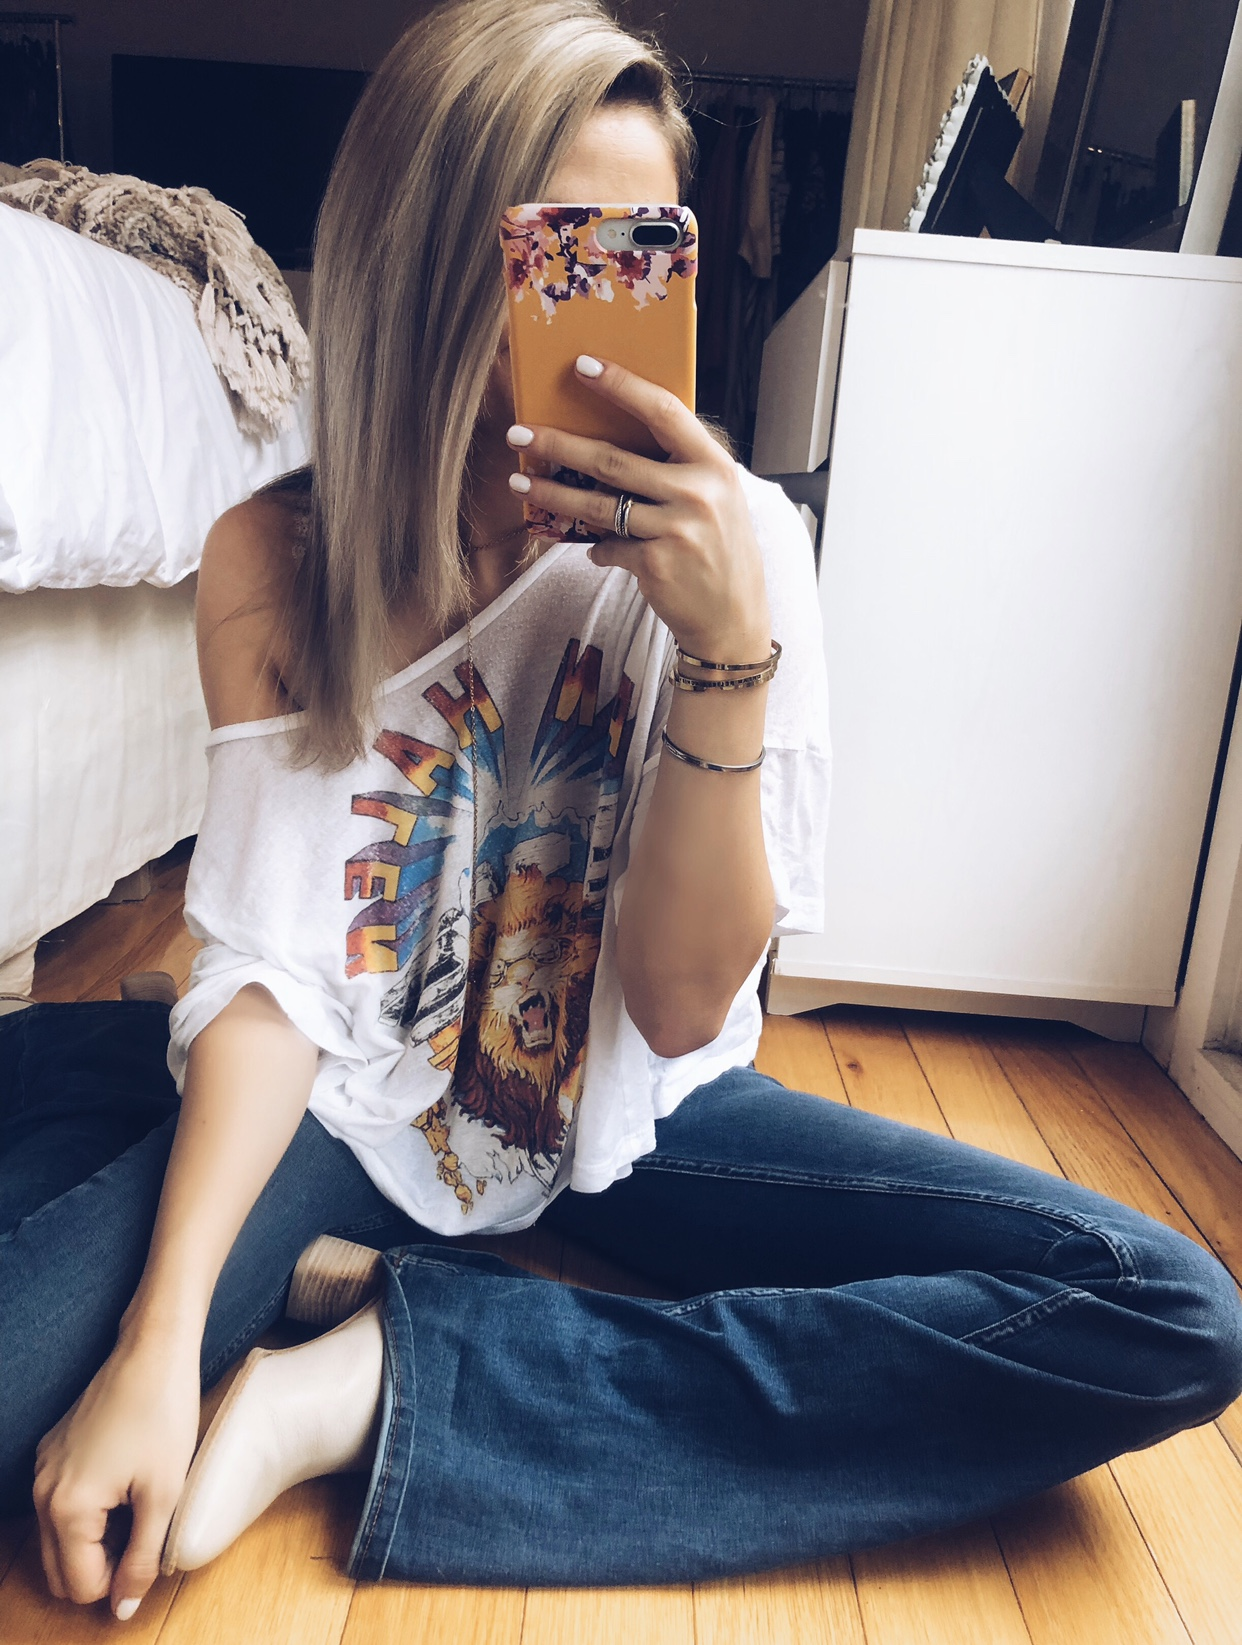 Recreate the Look - T-Shirt: Urban OutfittersBell Bottom Jeans: Free PeopleBooties: Stuart WeitzmanBracelets: MantraBand (use code 'sarahrip' for 10% off)